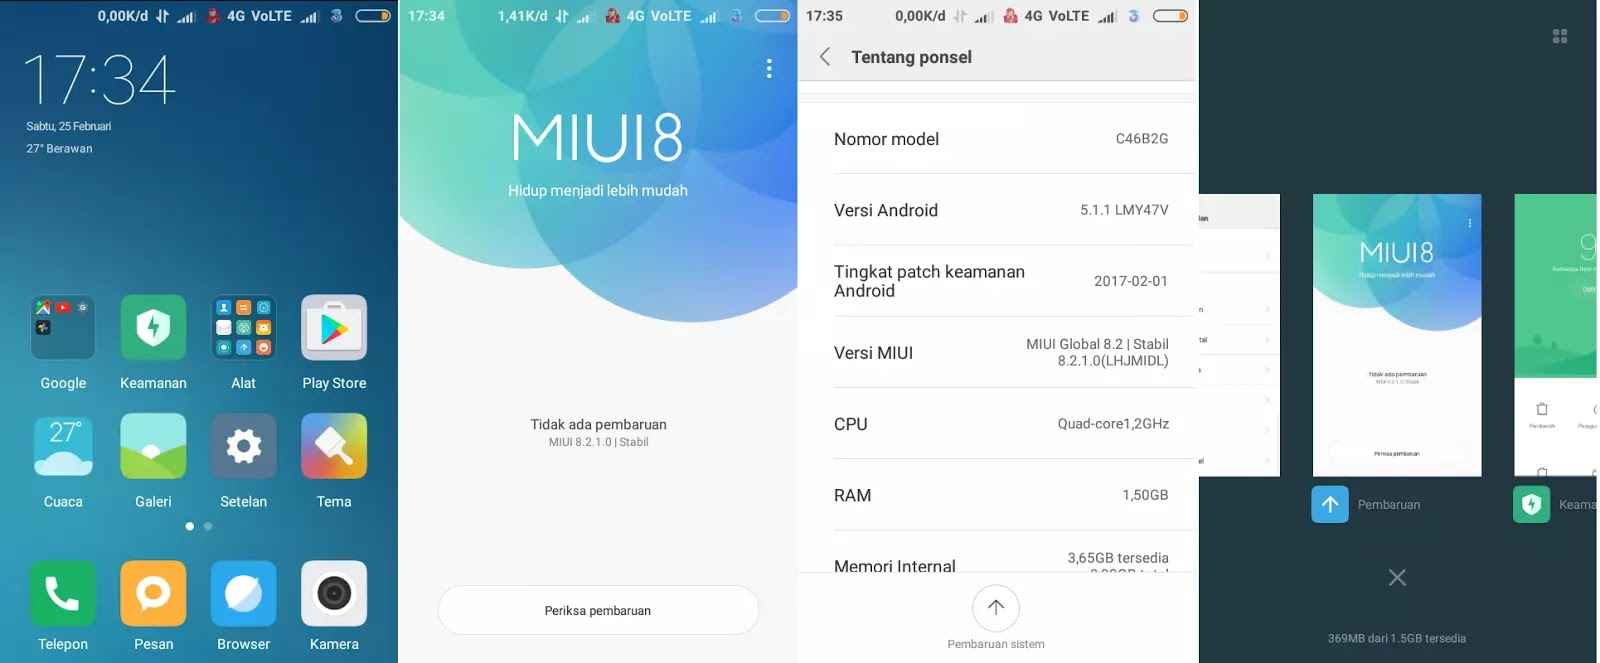 Custom ROM Miui 8 Global Stable 8.2.1.0 VoLTE Andromax ES